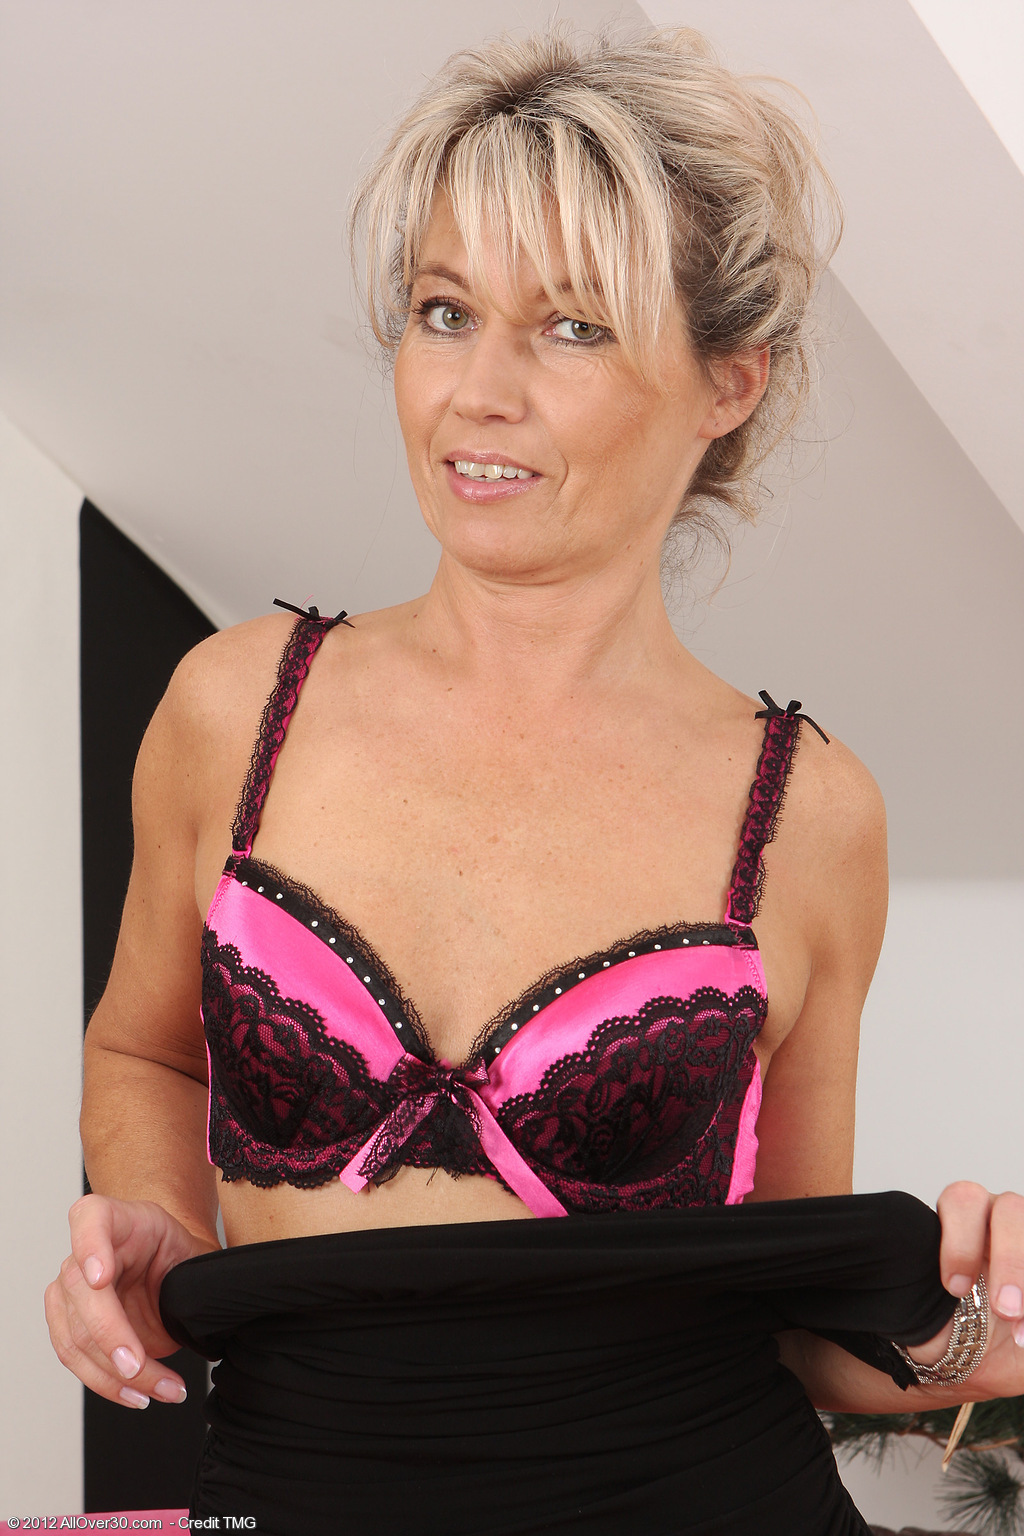 All Over 30 Free Milf And Mature Porn From